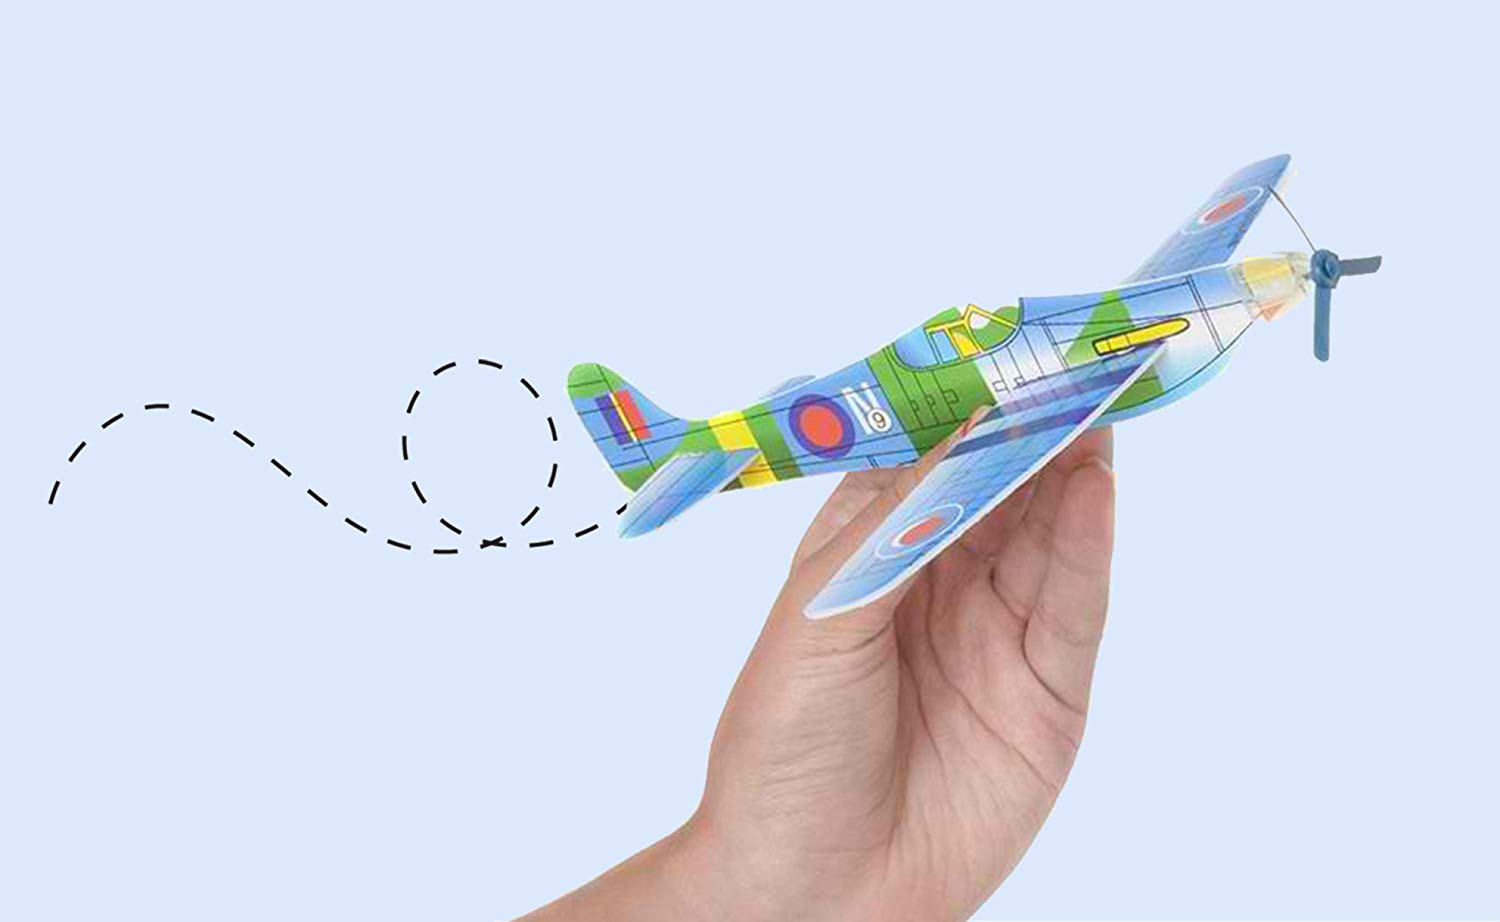 12.5'' Glider Planes,Throwing Foam Airplane ,Dual Flight Mode,Flying Aircraft, Airplane Toy for Kids 3 4 5 6 7 Years Old,Outdoor Sport Game Toys, Boys Girls Flying Party Favors Birthday Gifts by Jupitaz (Image #6)